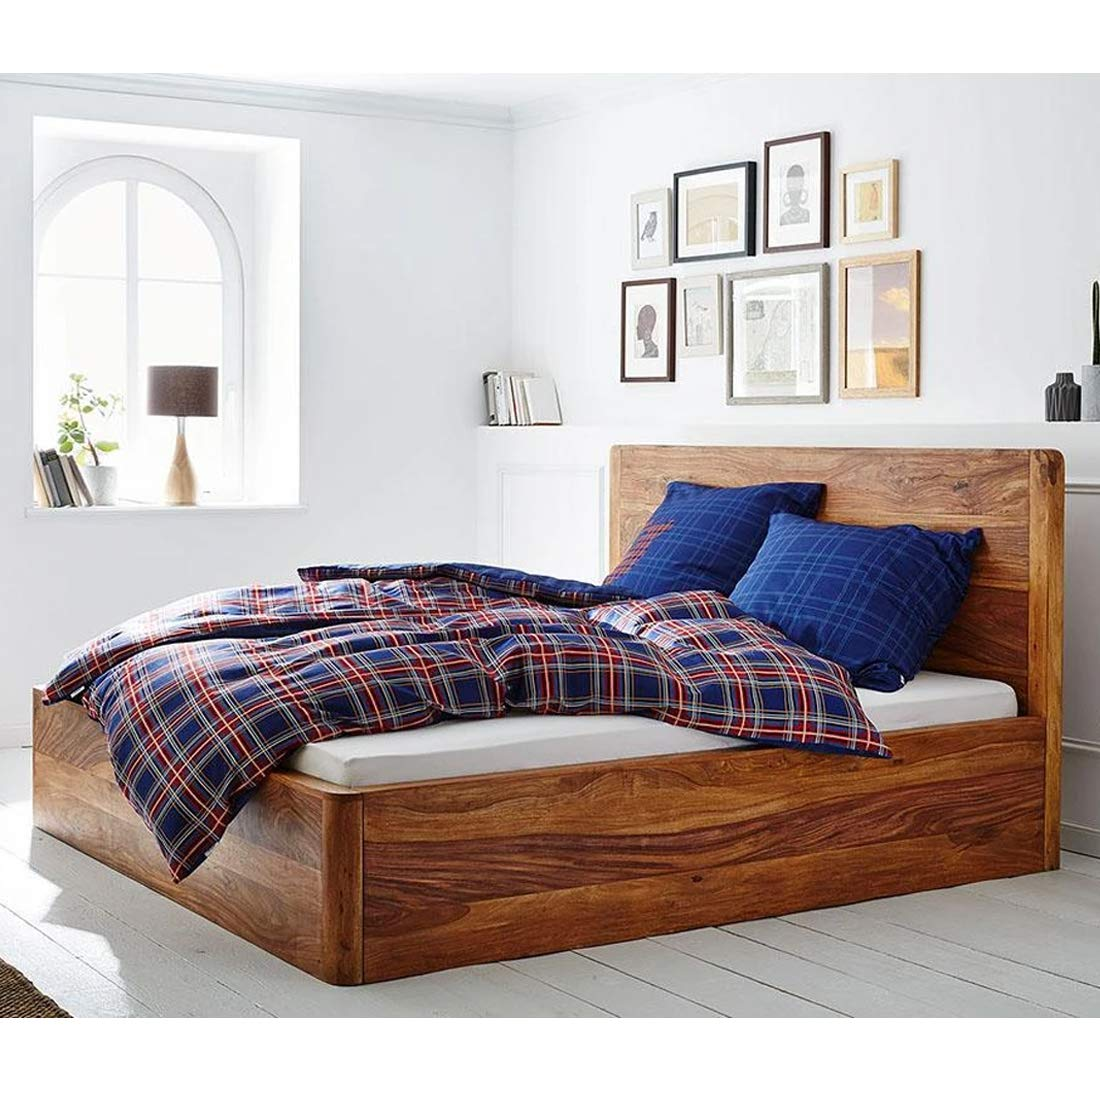 Bonzin Queen Size Bed with Storage Teak from Ghana  20+ Years Life Teak Polish Termite & Bore Treated